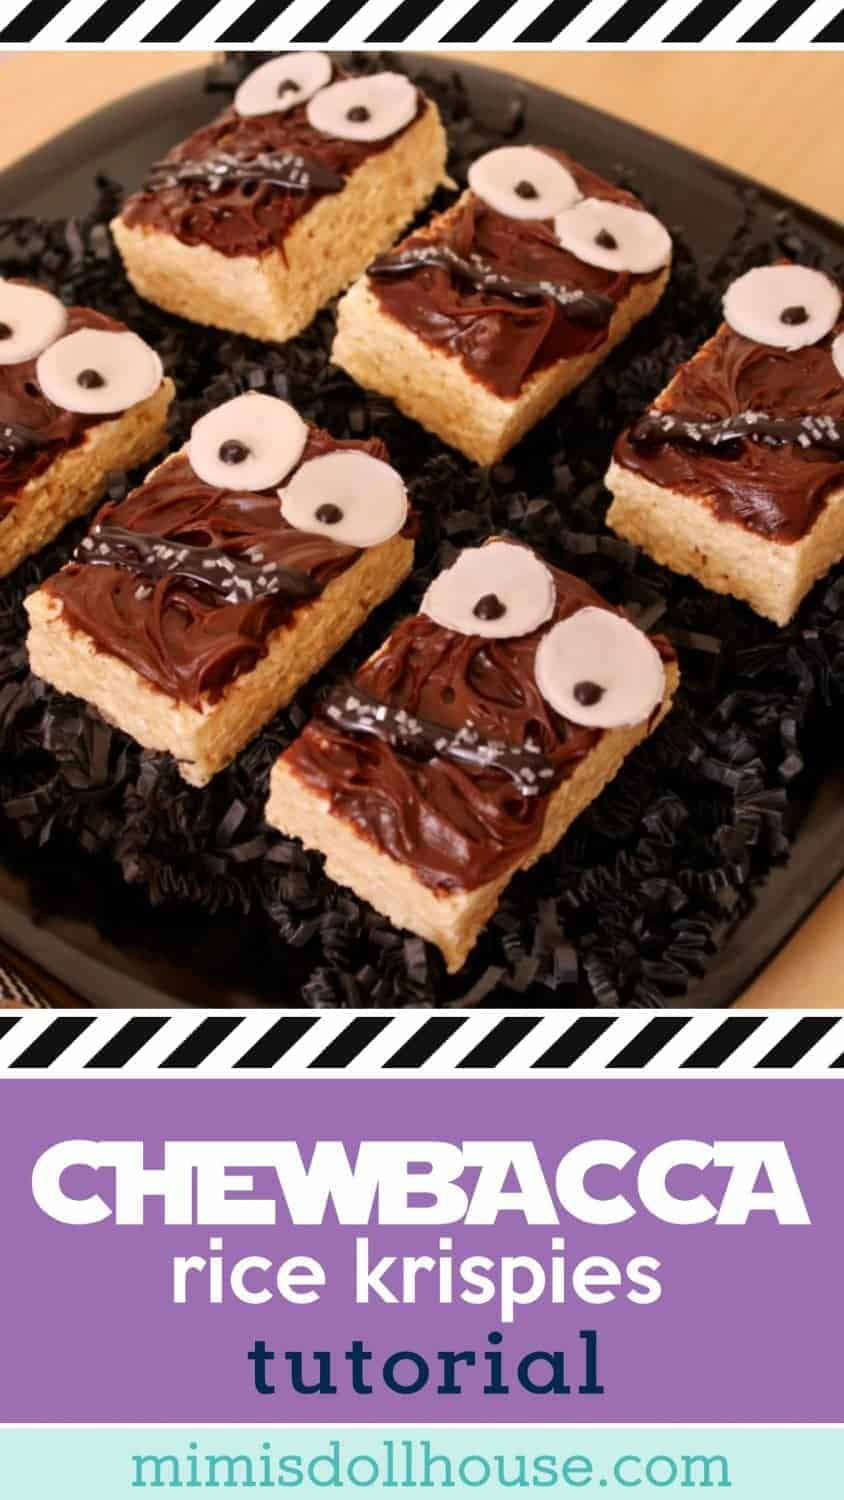 Looking for an easy DIY Star Wars party treat? These Chewbacca Rice Krispie Treats are adorable and easy to make! Check out the easy tutorial. #starwars #chewbacca #partyideas #diyparty #ricekrispies